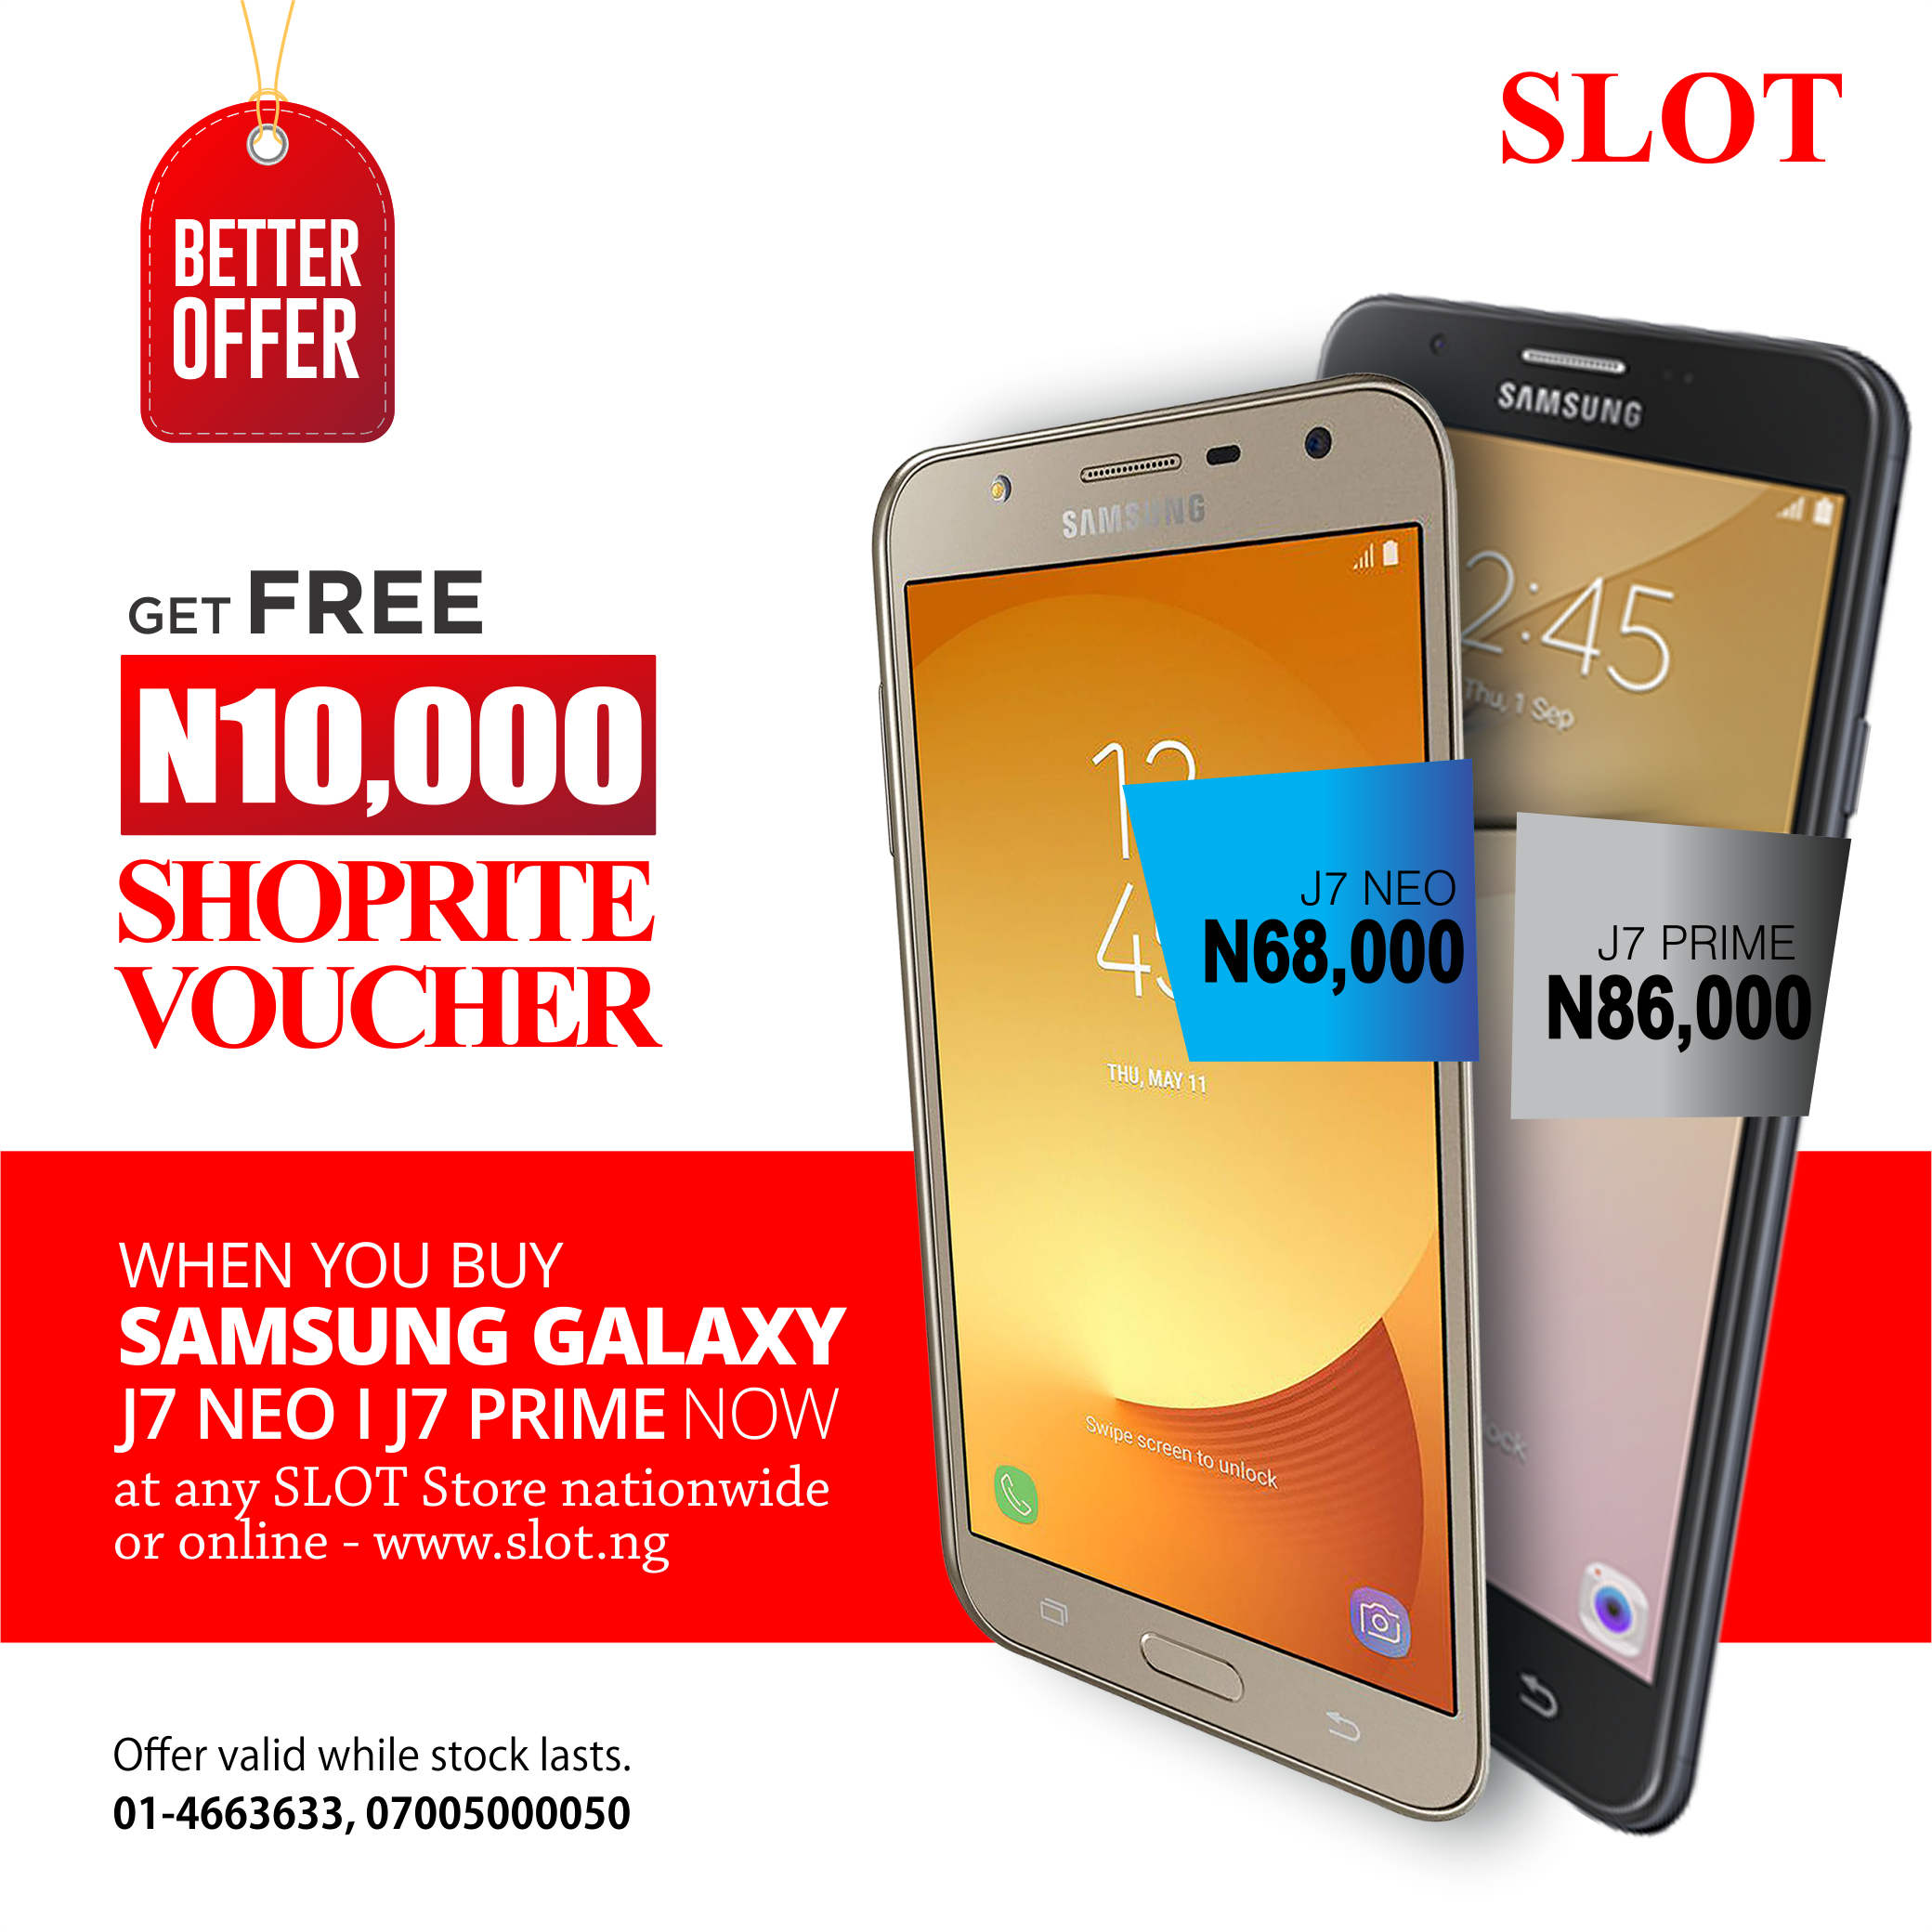 Make the most out of this Season.  Buy the Samsung Galaxy J7 NEO and get N10,000 ShopRite voucher or airtime instantly